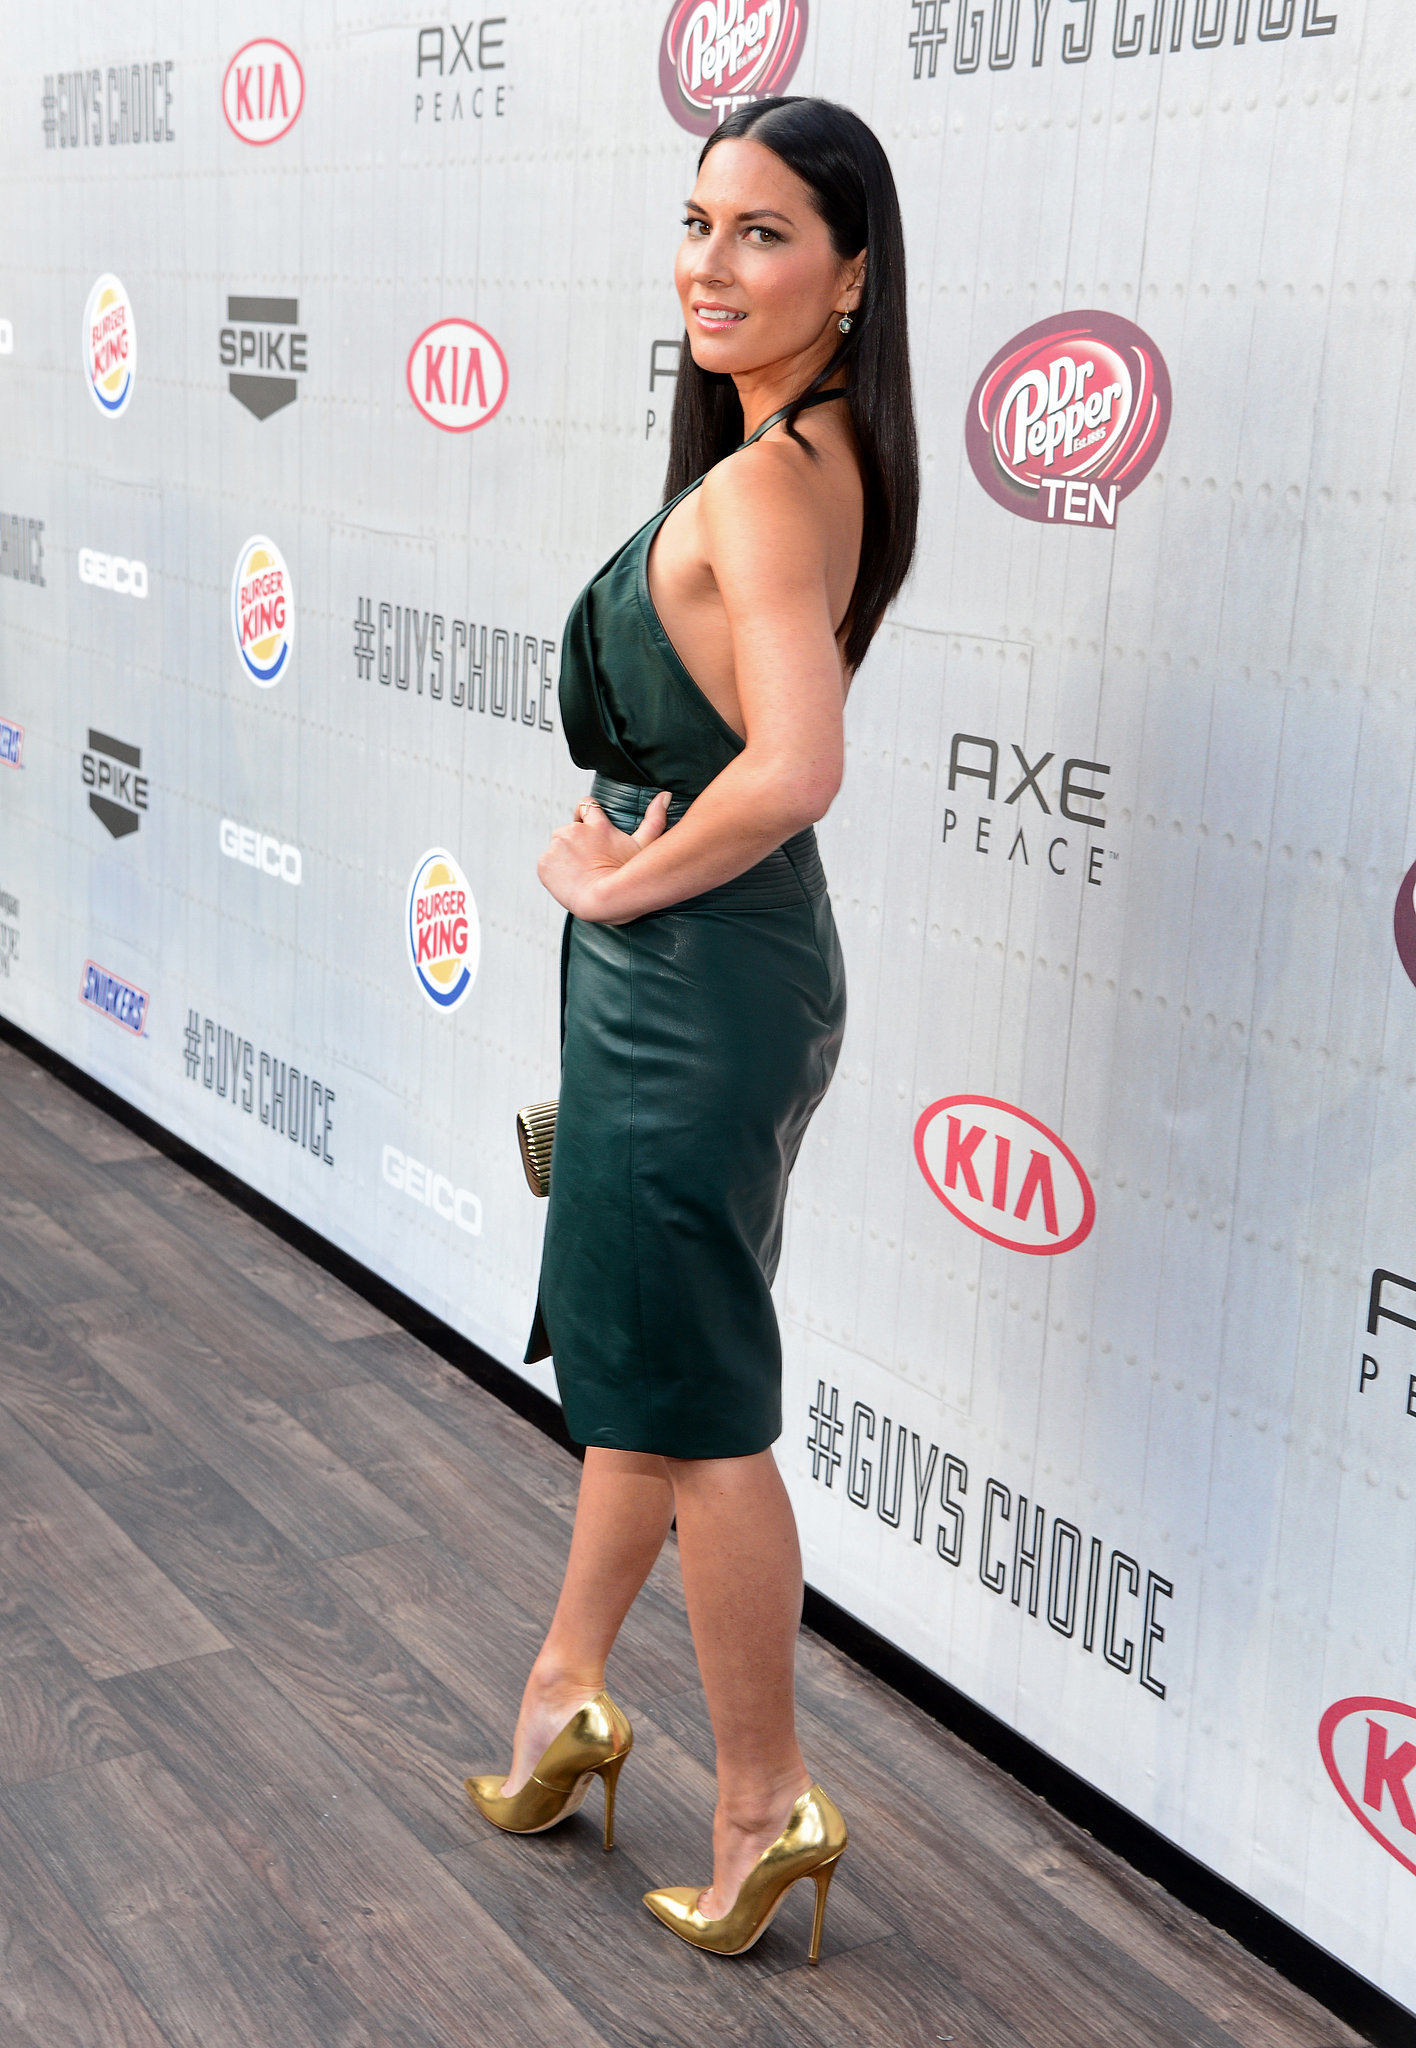 Olivia Munn's toned physique was front and center.